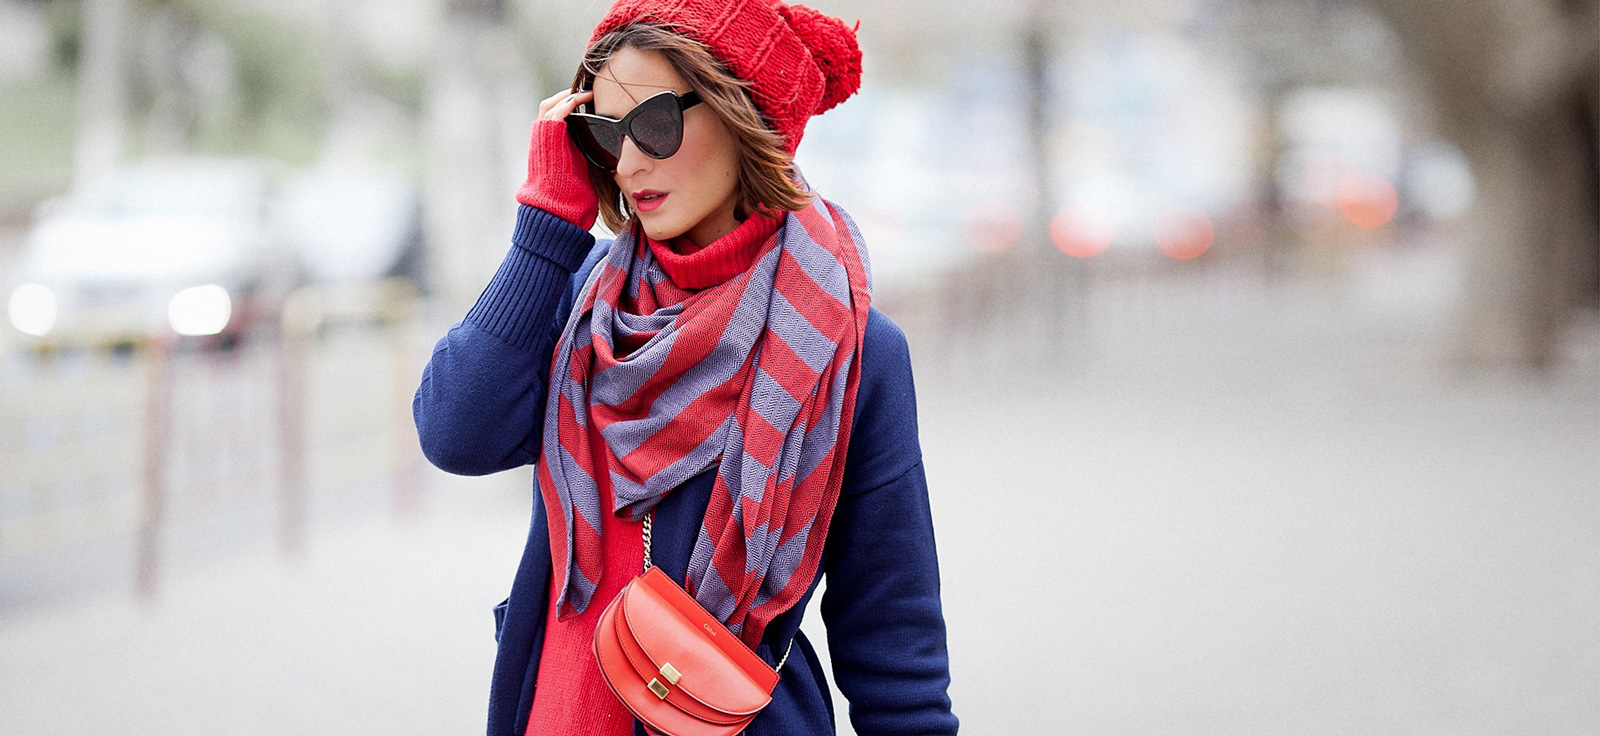 winter outfits with navy blue coat and red hat by Ellena Galant